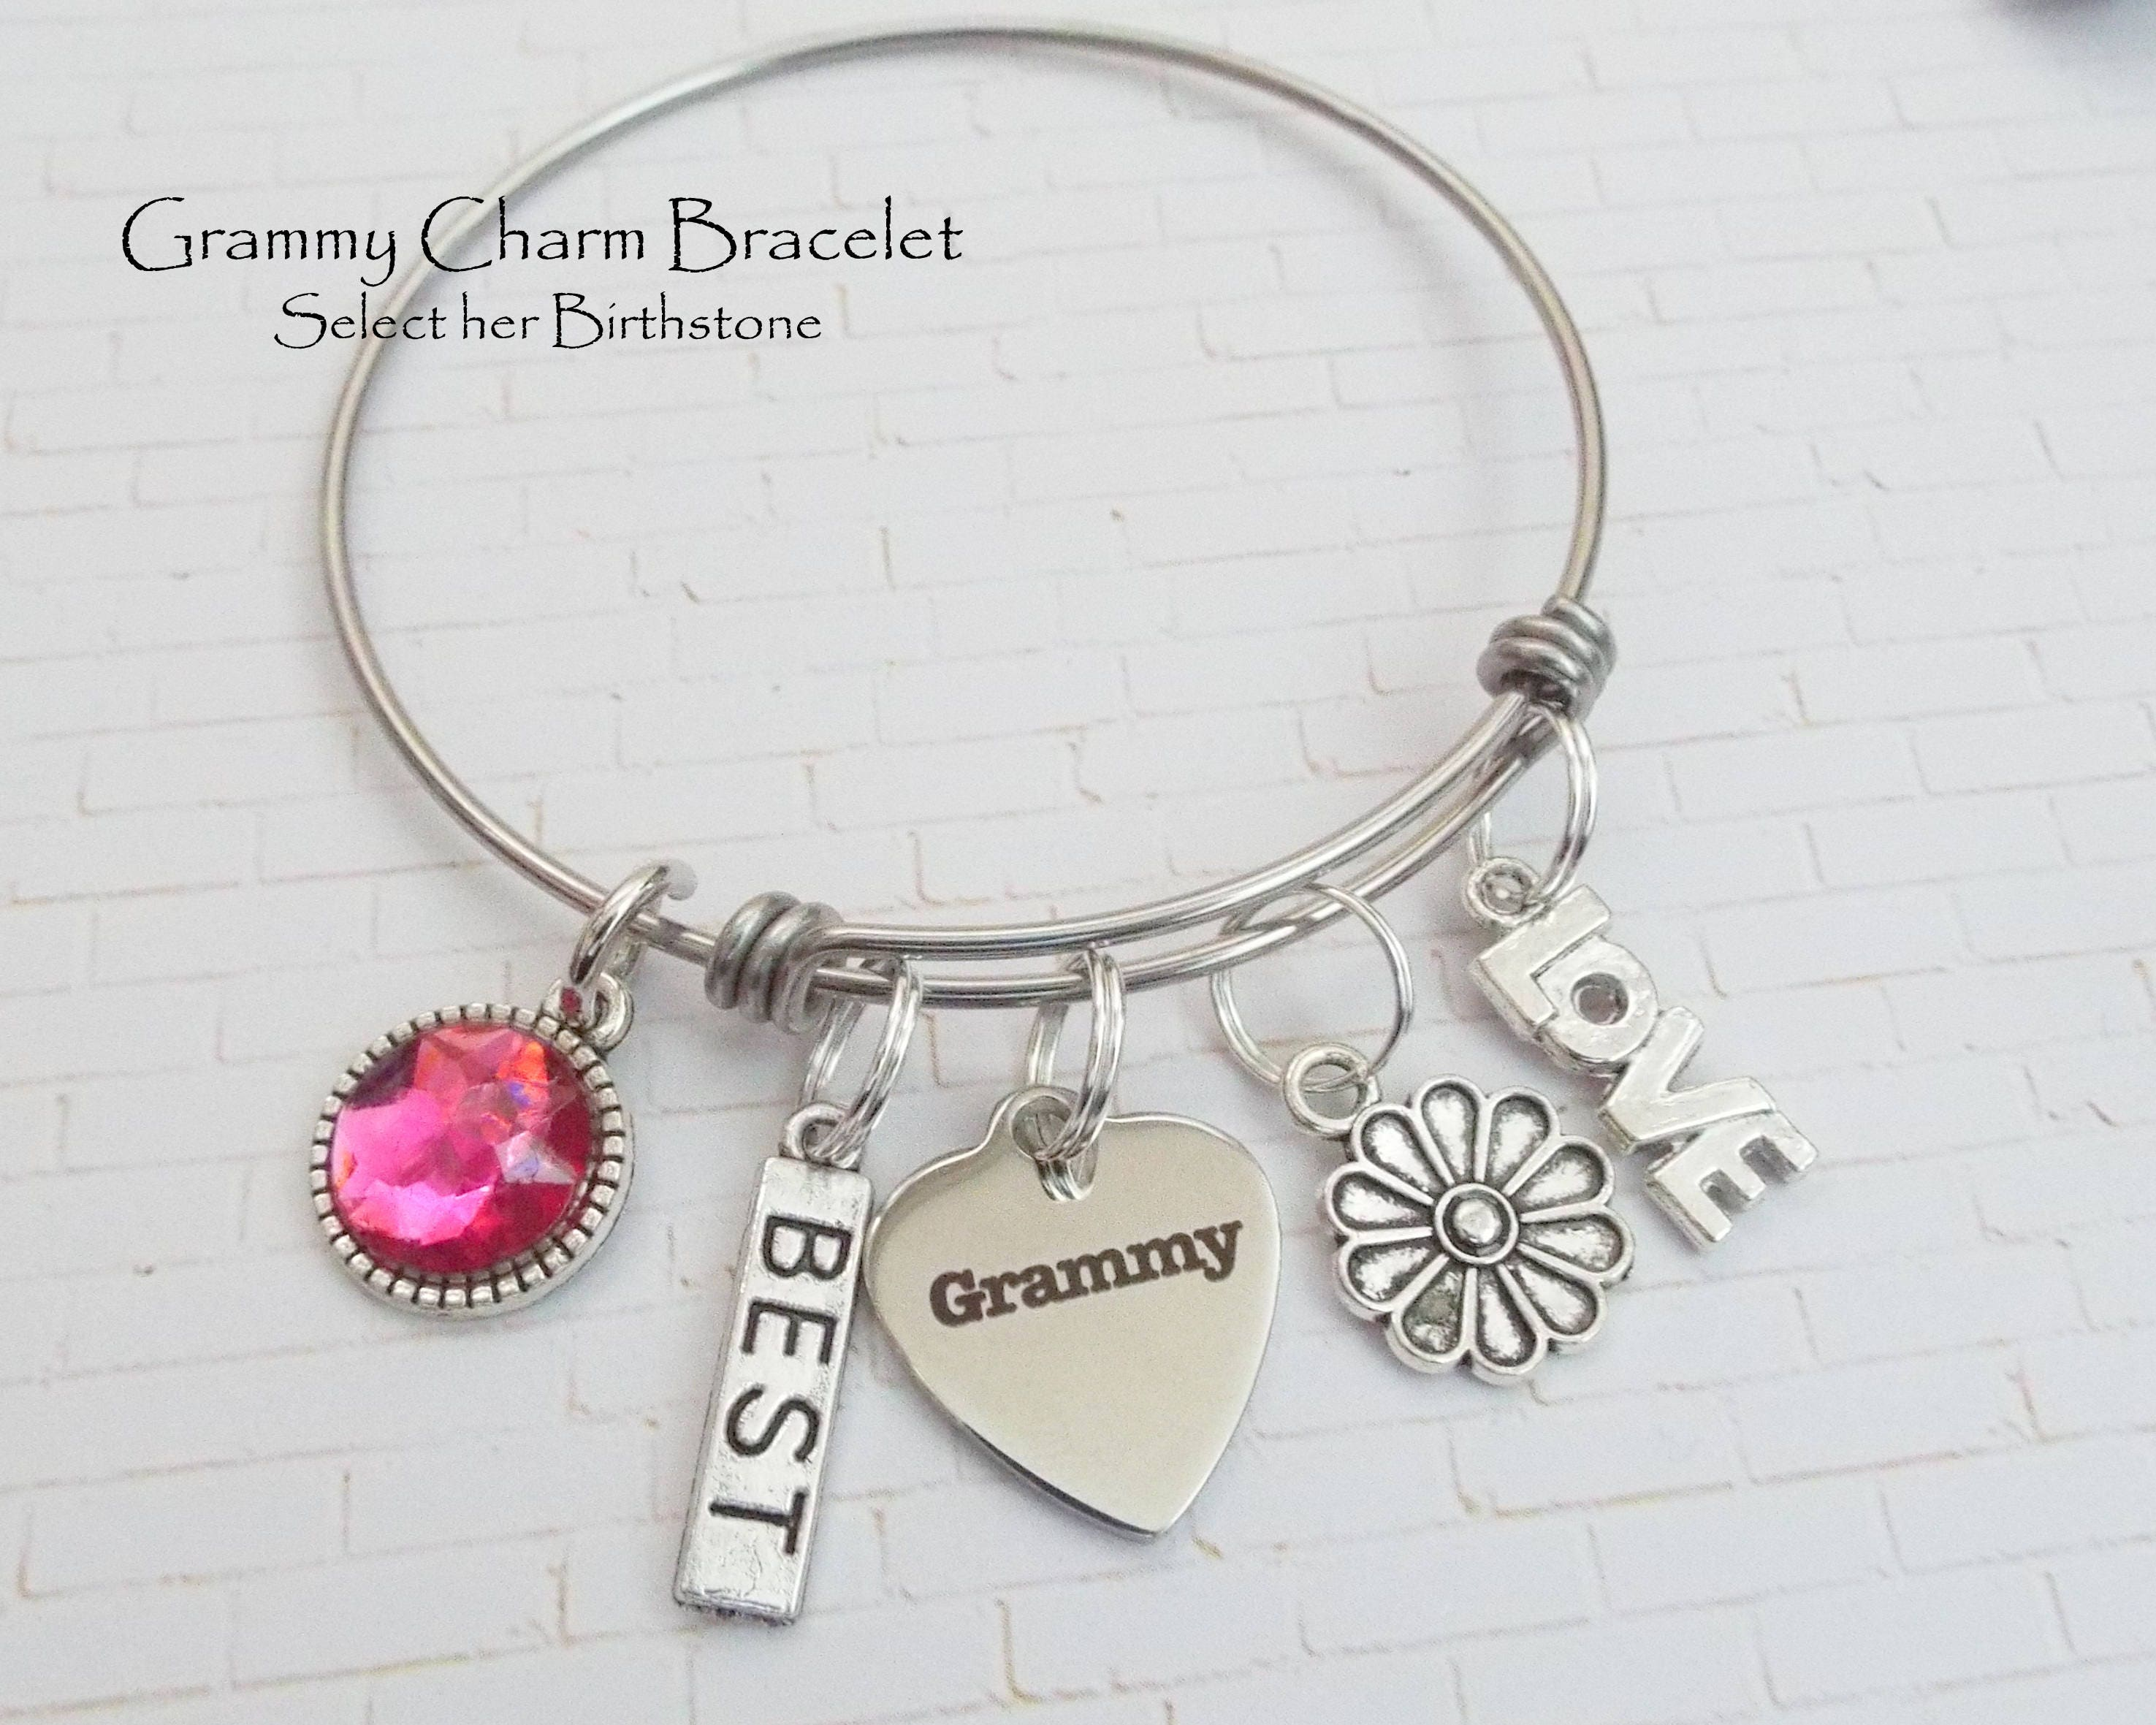 grandchild bracelet grammy fullxfull photo il mother listing gallery for s grandmother day gift mothers